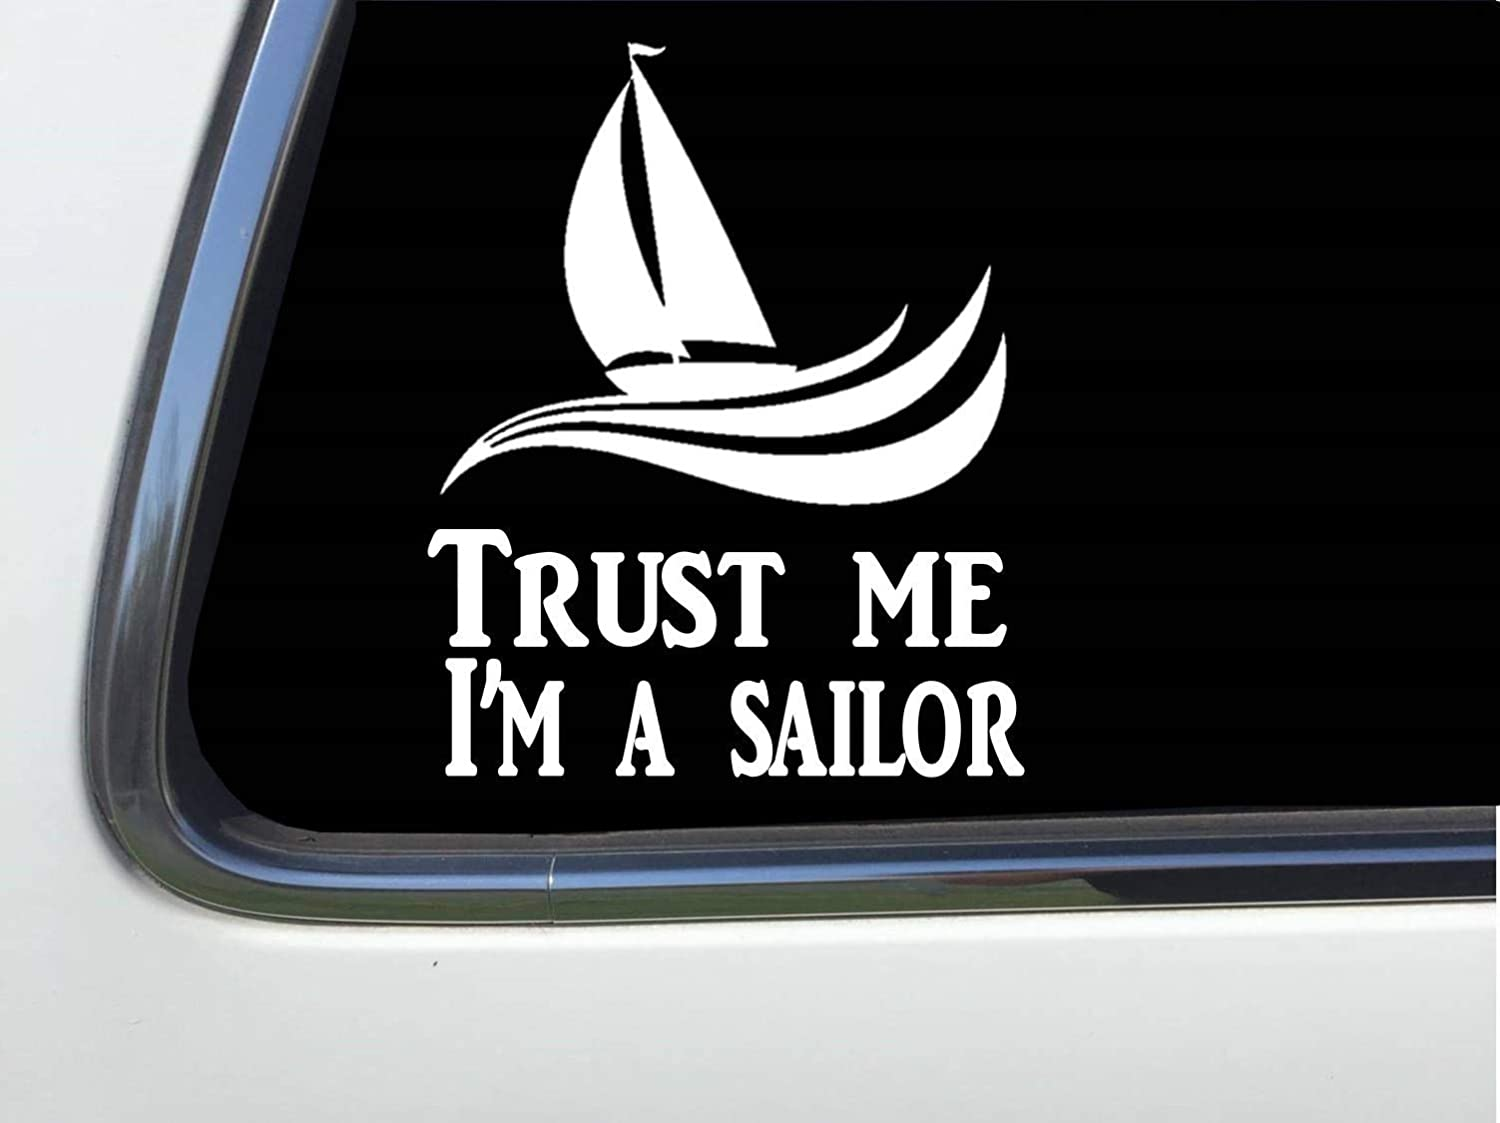 Thatlilcabin TRUST ME IM A SAILOR with sailboat and waves 6 vinyl sticker decal HM1732